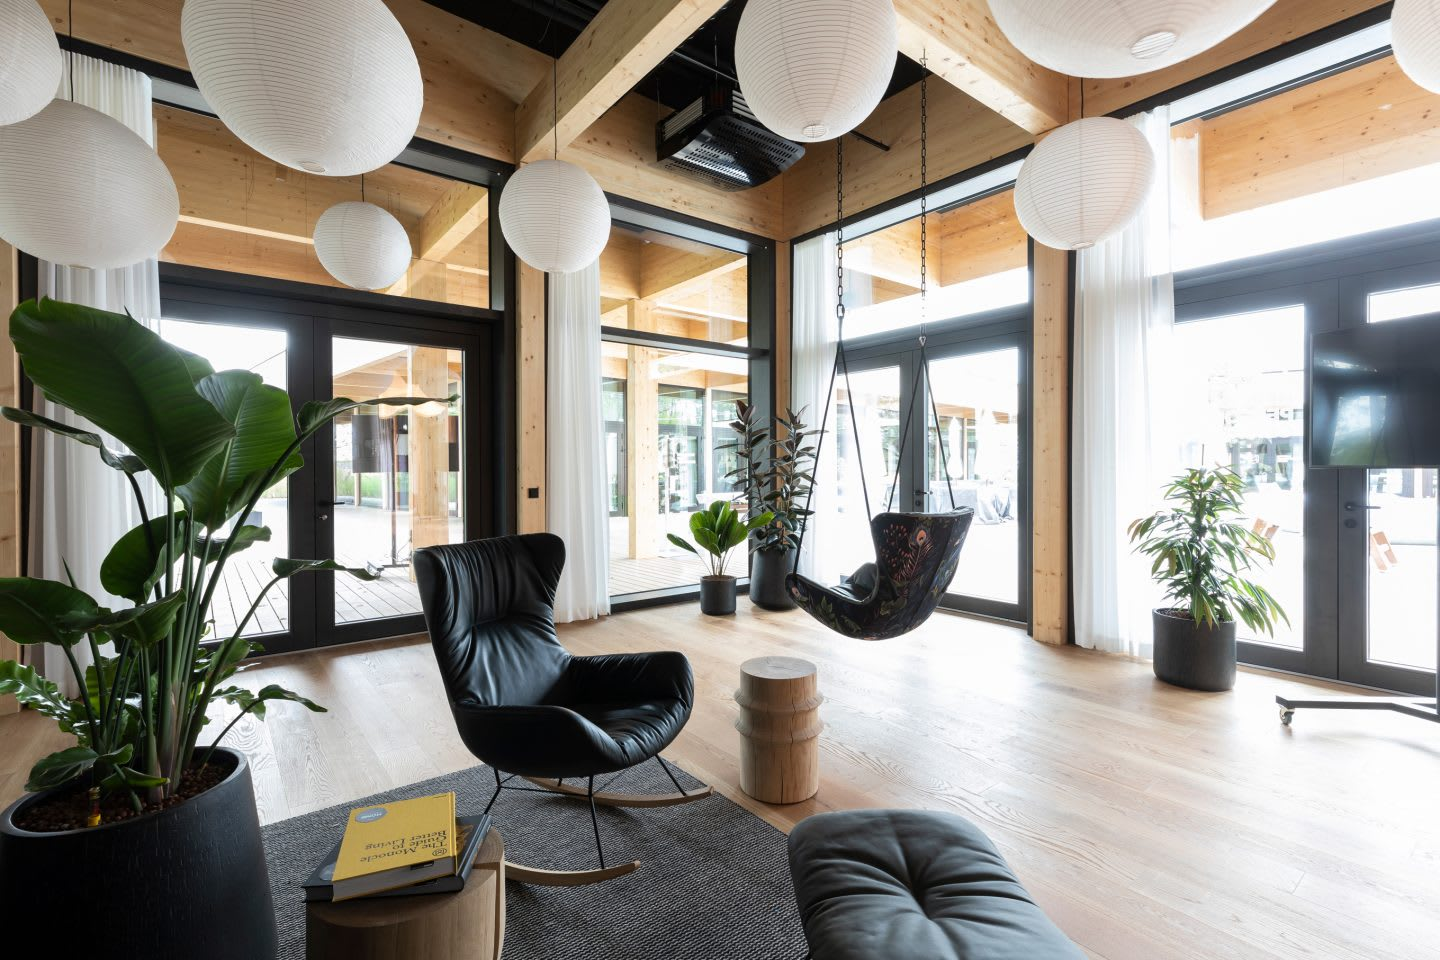 Area to relax with two single chairs and a TV in an open indoor area inside the German national football teams base camp. Home Ground, football, teambuilding, adidas headquarters, GamePlan A.